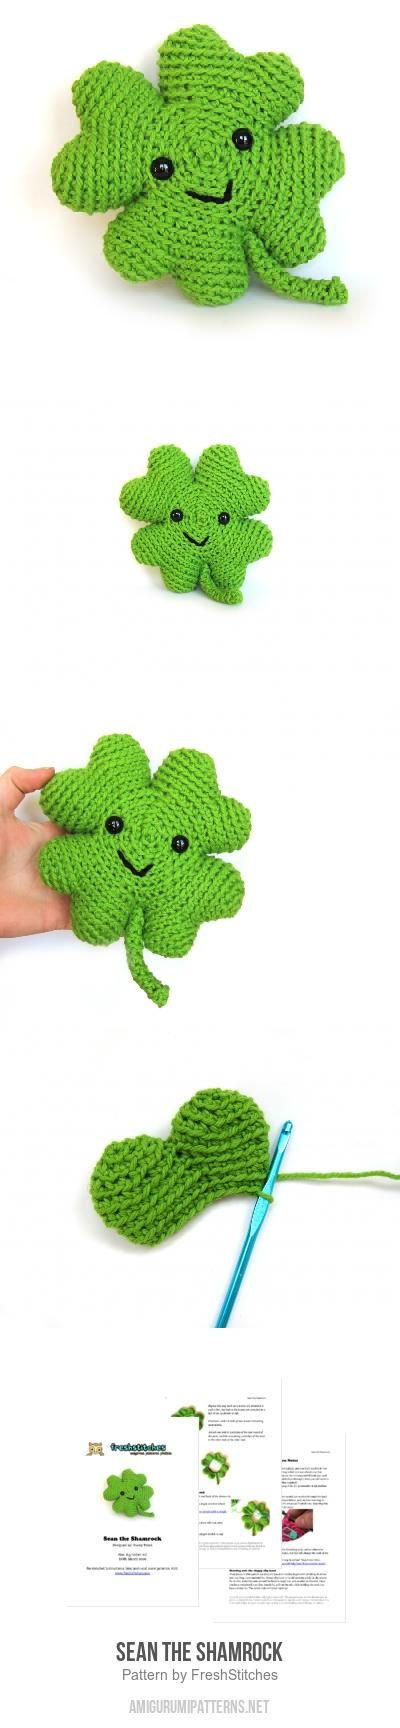 Sean The Clover Amigurumi Pattern